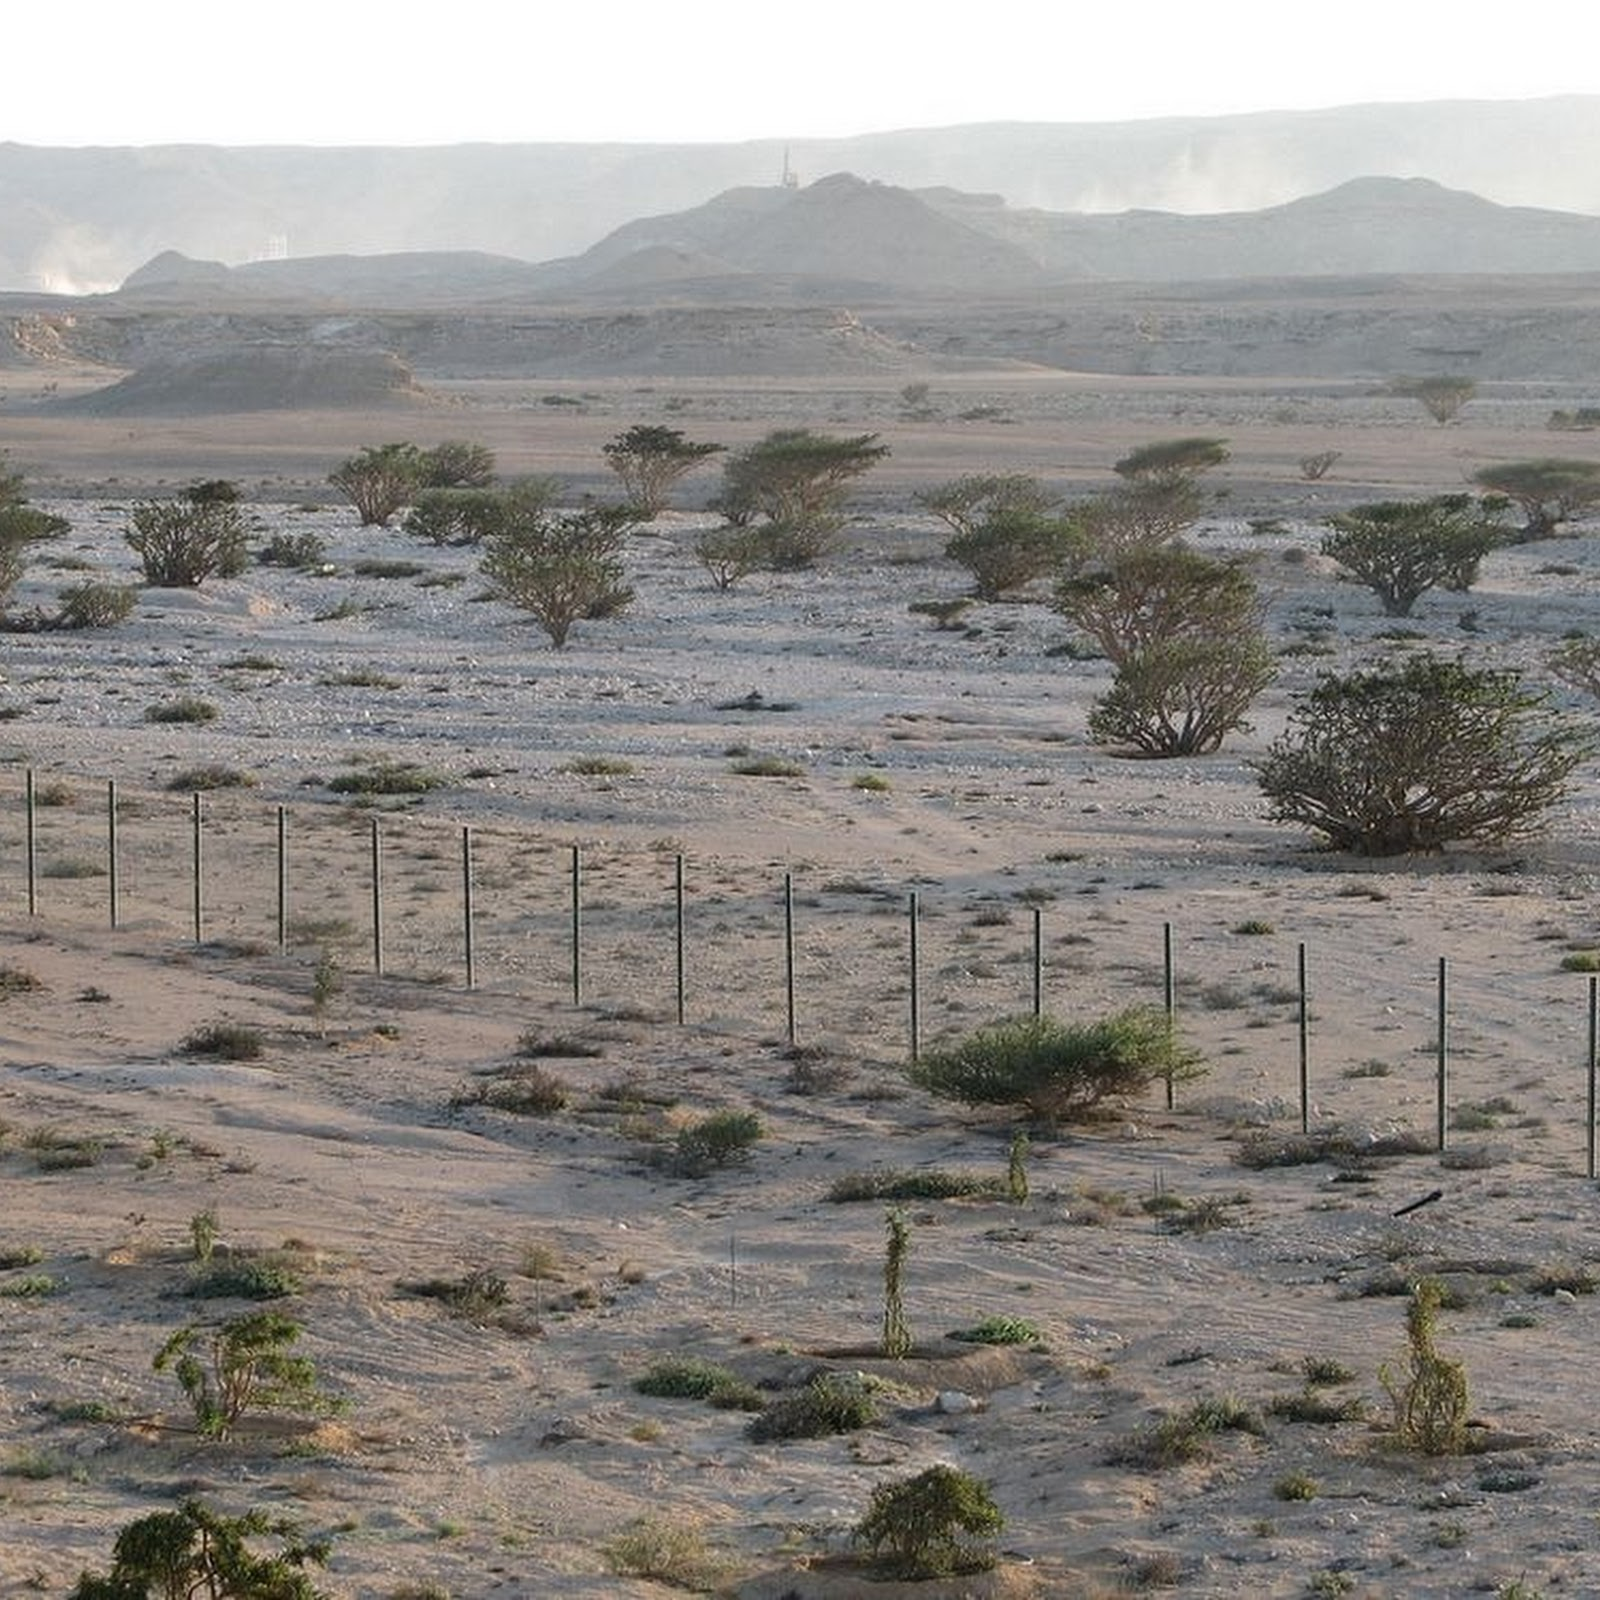 The Frankincense Trees of Wadi Dawkah